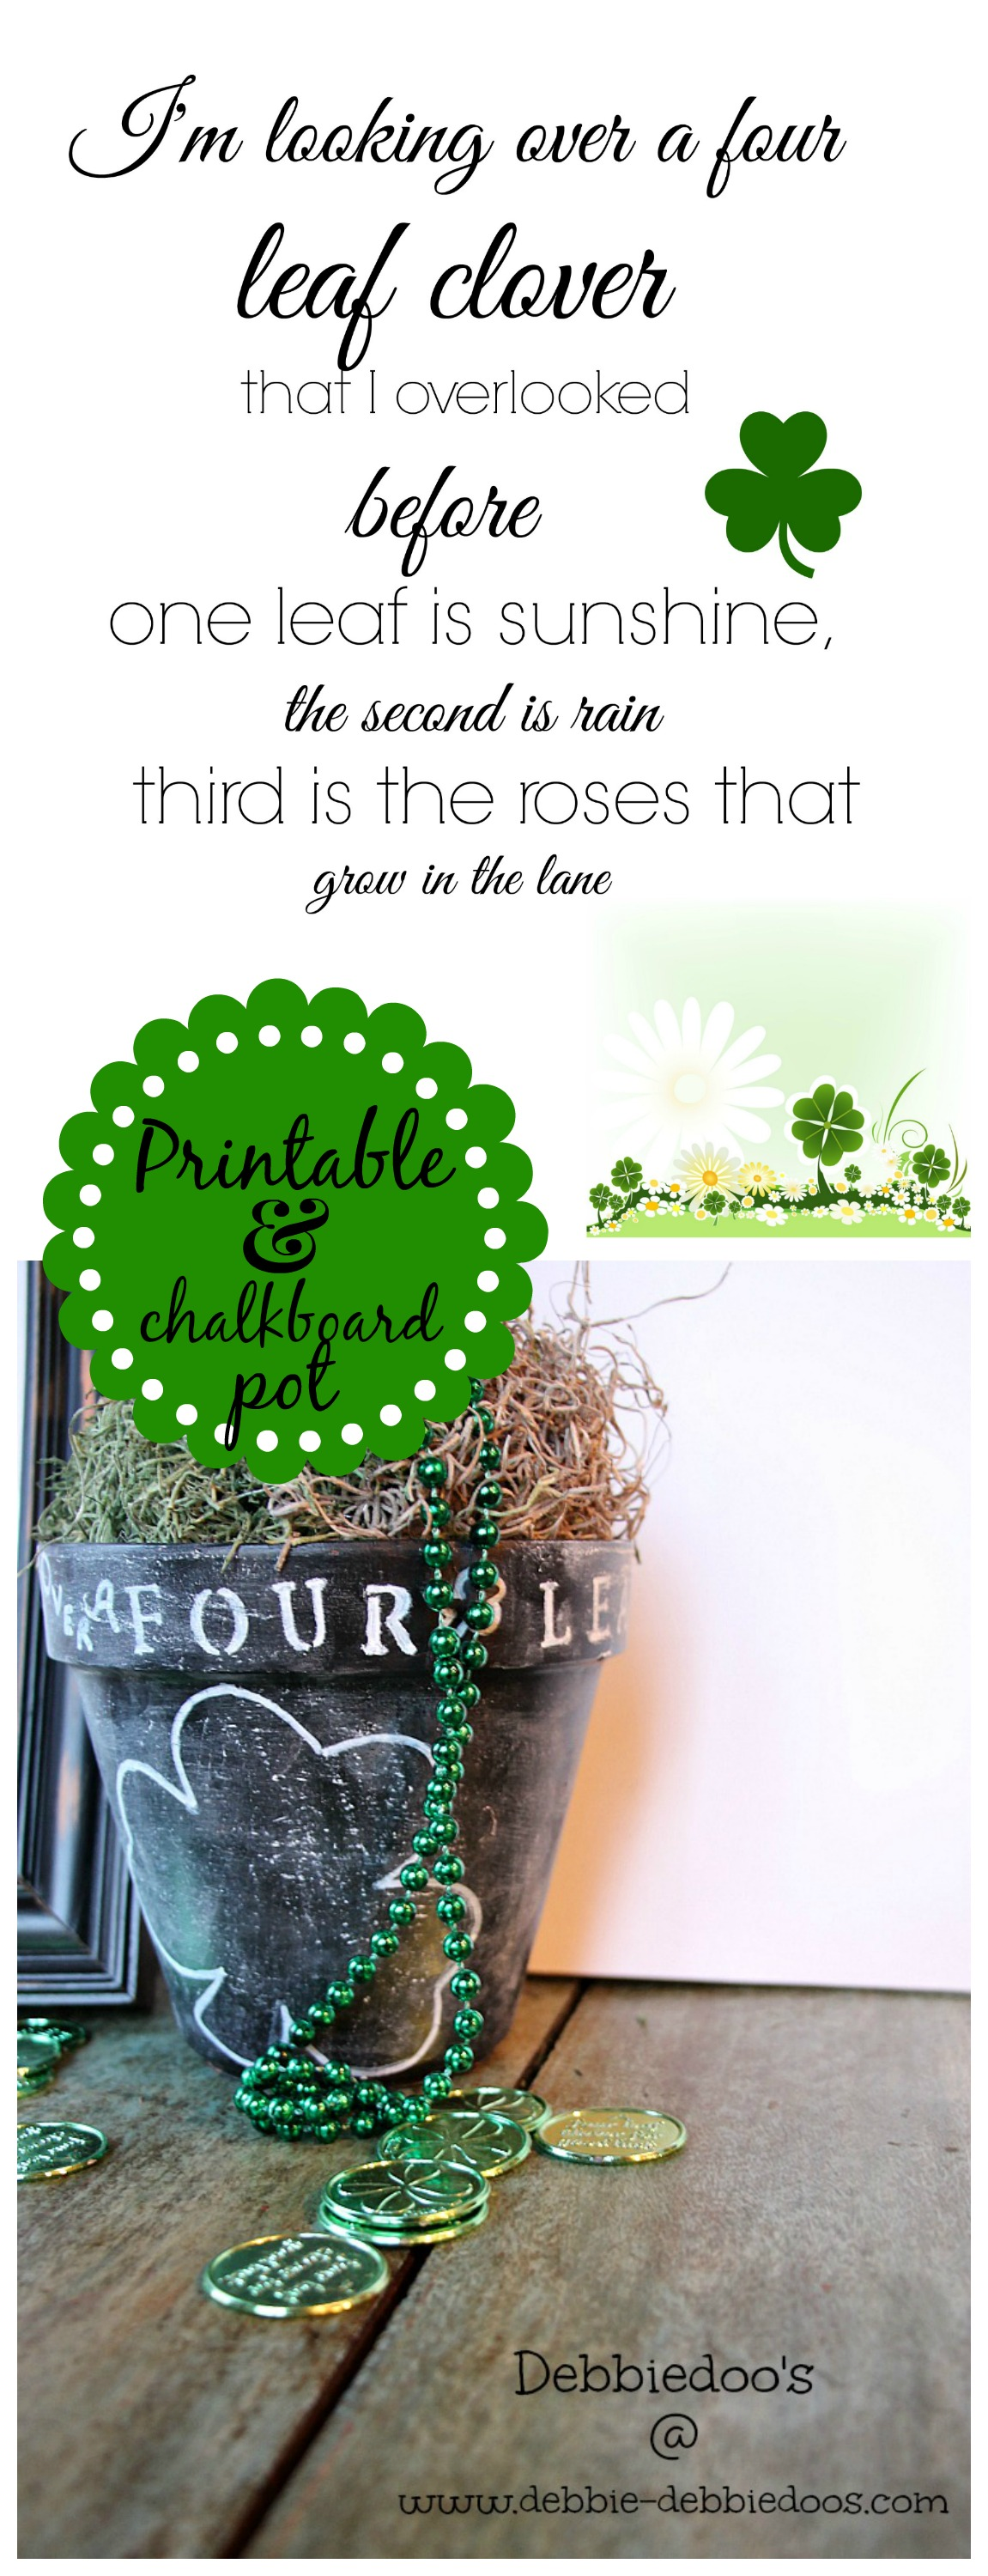 Printable and chalkboard pot